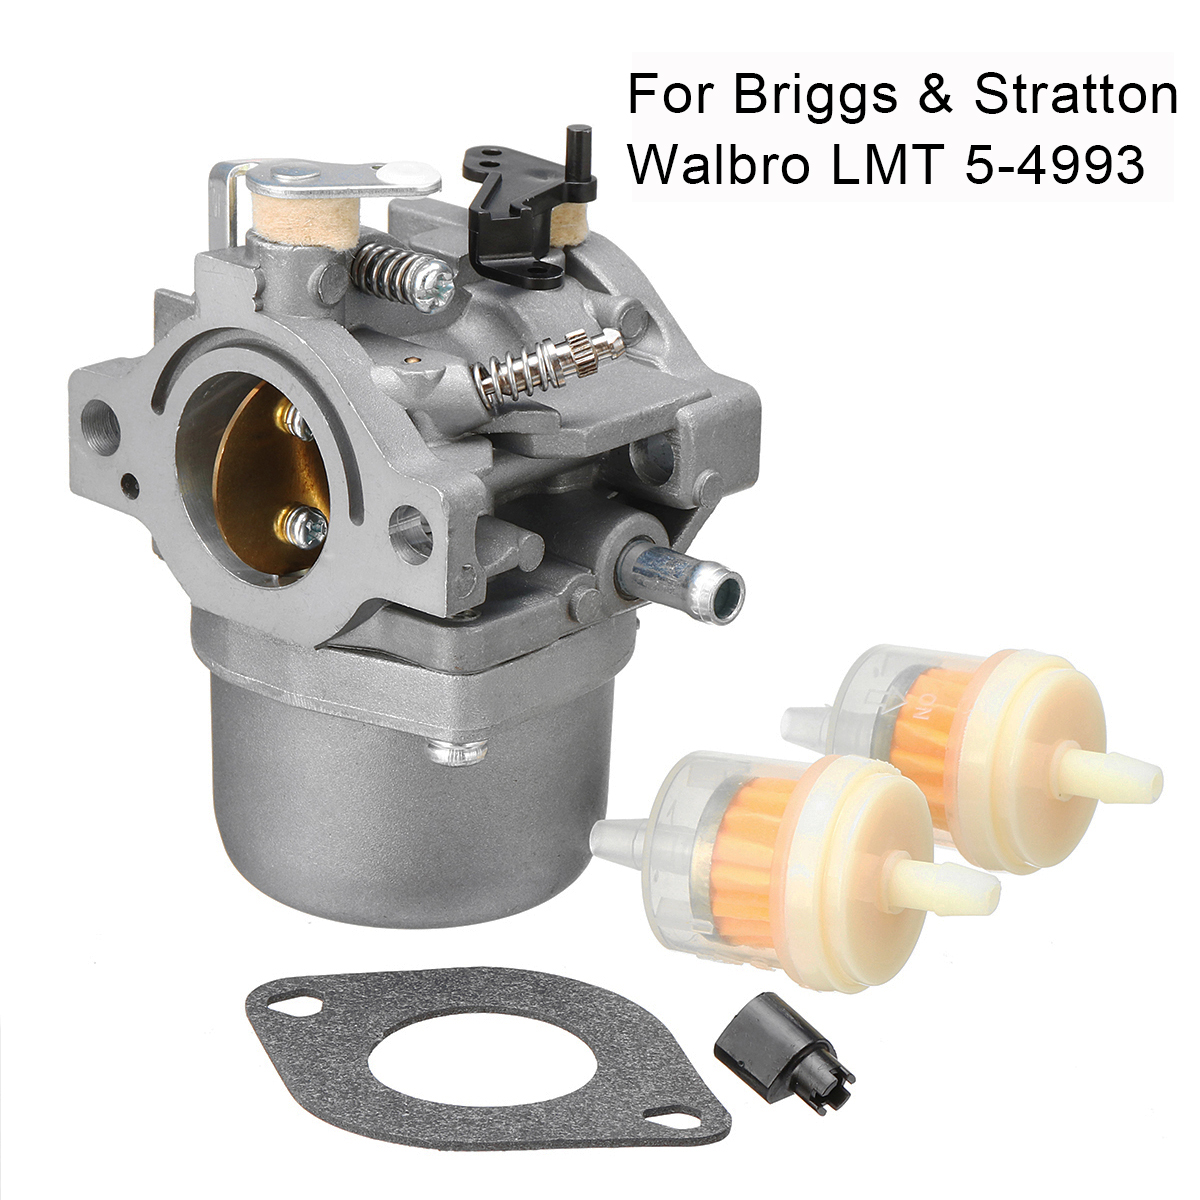 Carburetor for Briggs & Stratton Walbro LMT 5-4993 with Mounting Gasket Filter Auto Fuel Supply System Parts Carburetor купить недорого в Москве